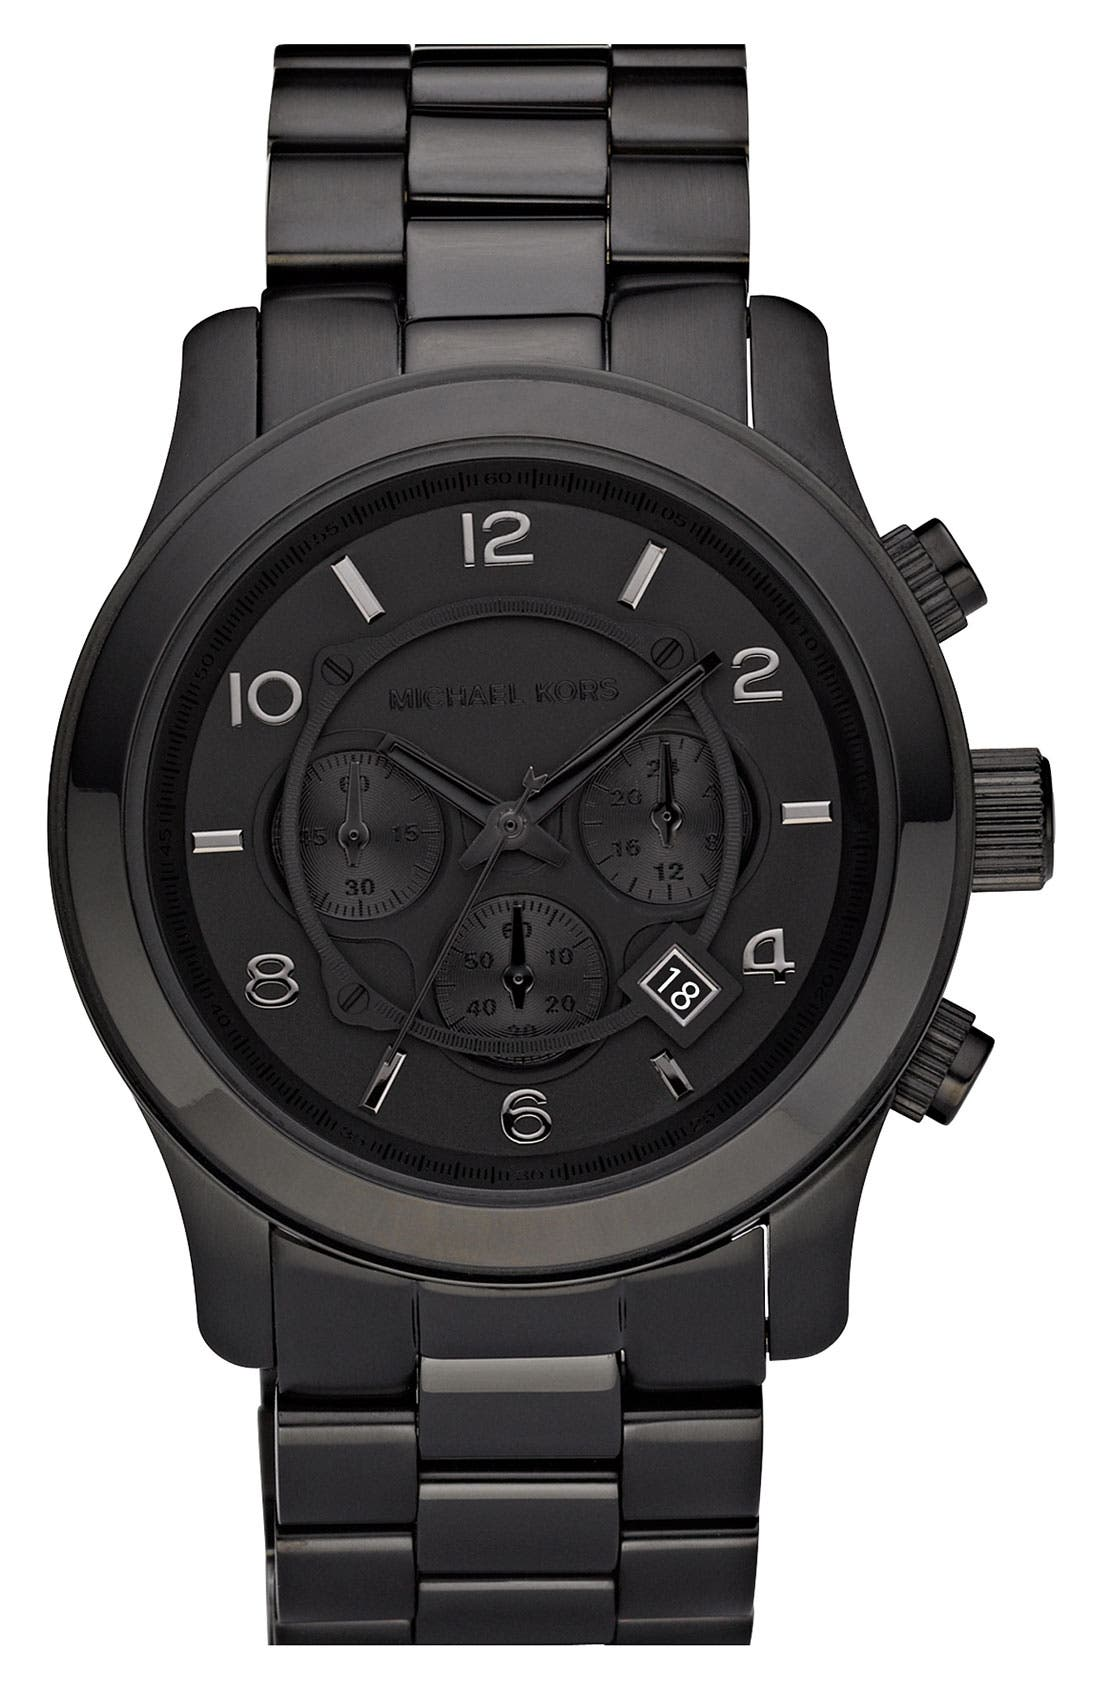 Alternate Image 1 Selected - Michael Kors 'Large Runway' Blacked Out Chronograph Watch, 45mm